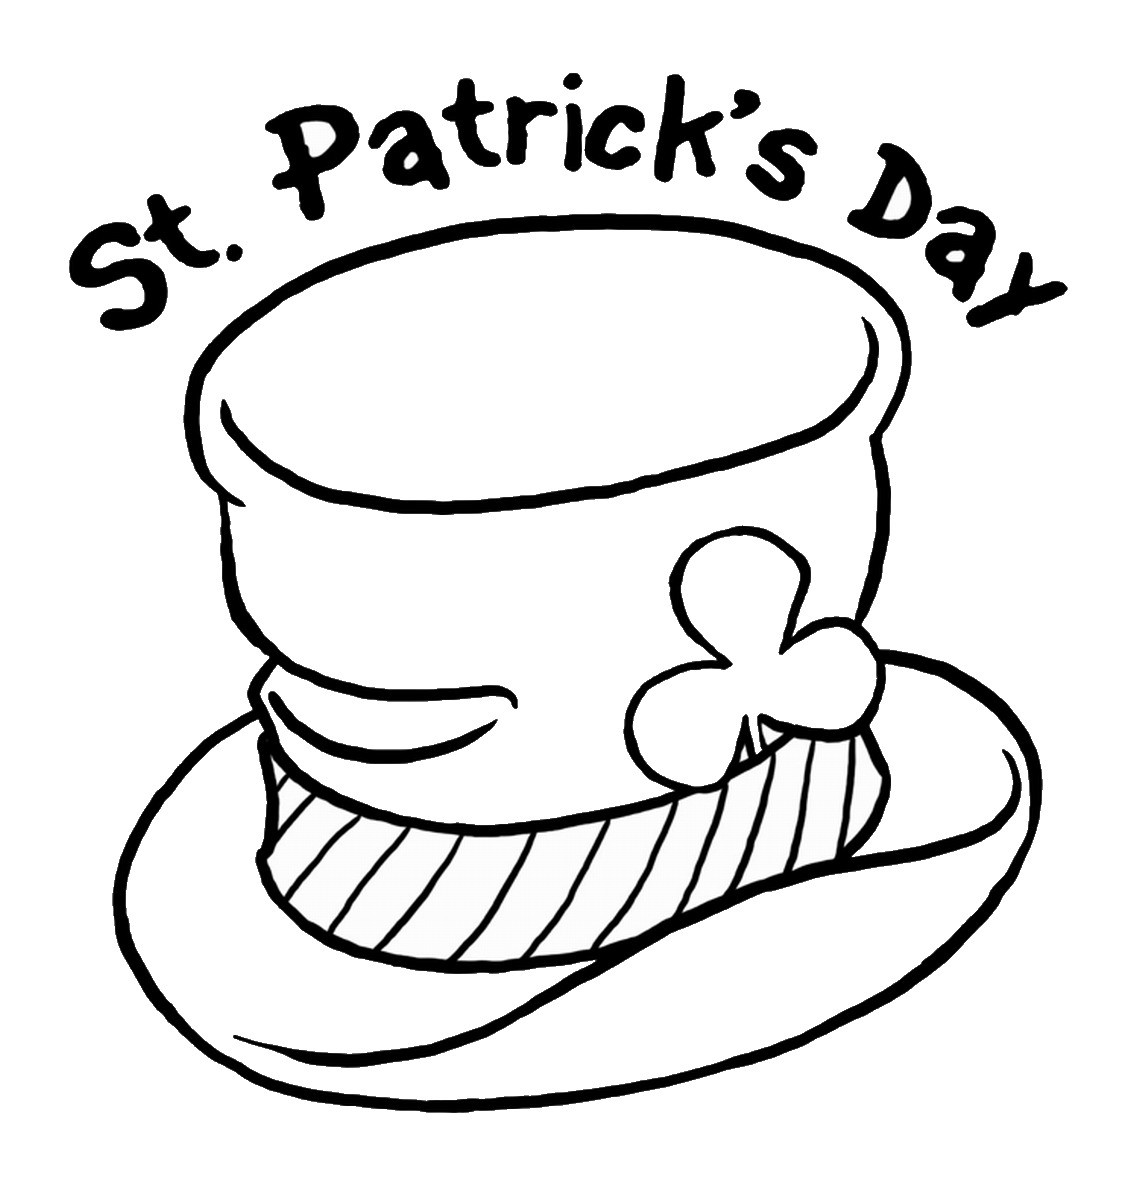 Free Coloring Sheets For Kids For St Patricks Day  St Patrick s Day Coloring Pages for childrens printable